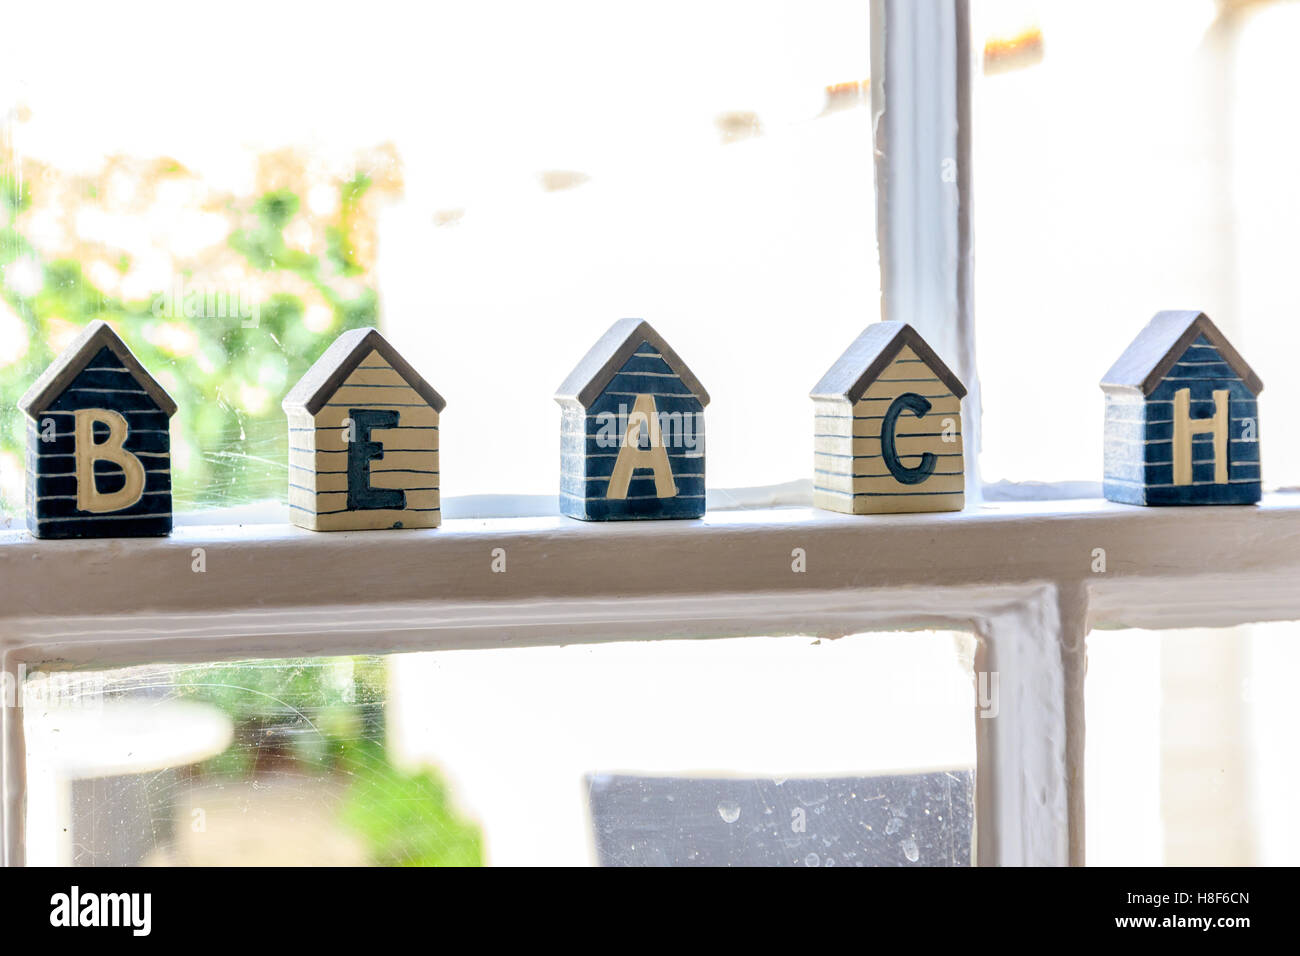 Little beach hut wooden ornaments on window frame composing the word ...